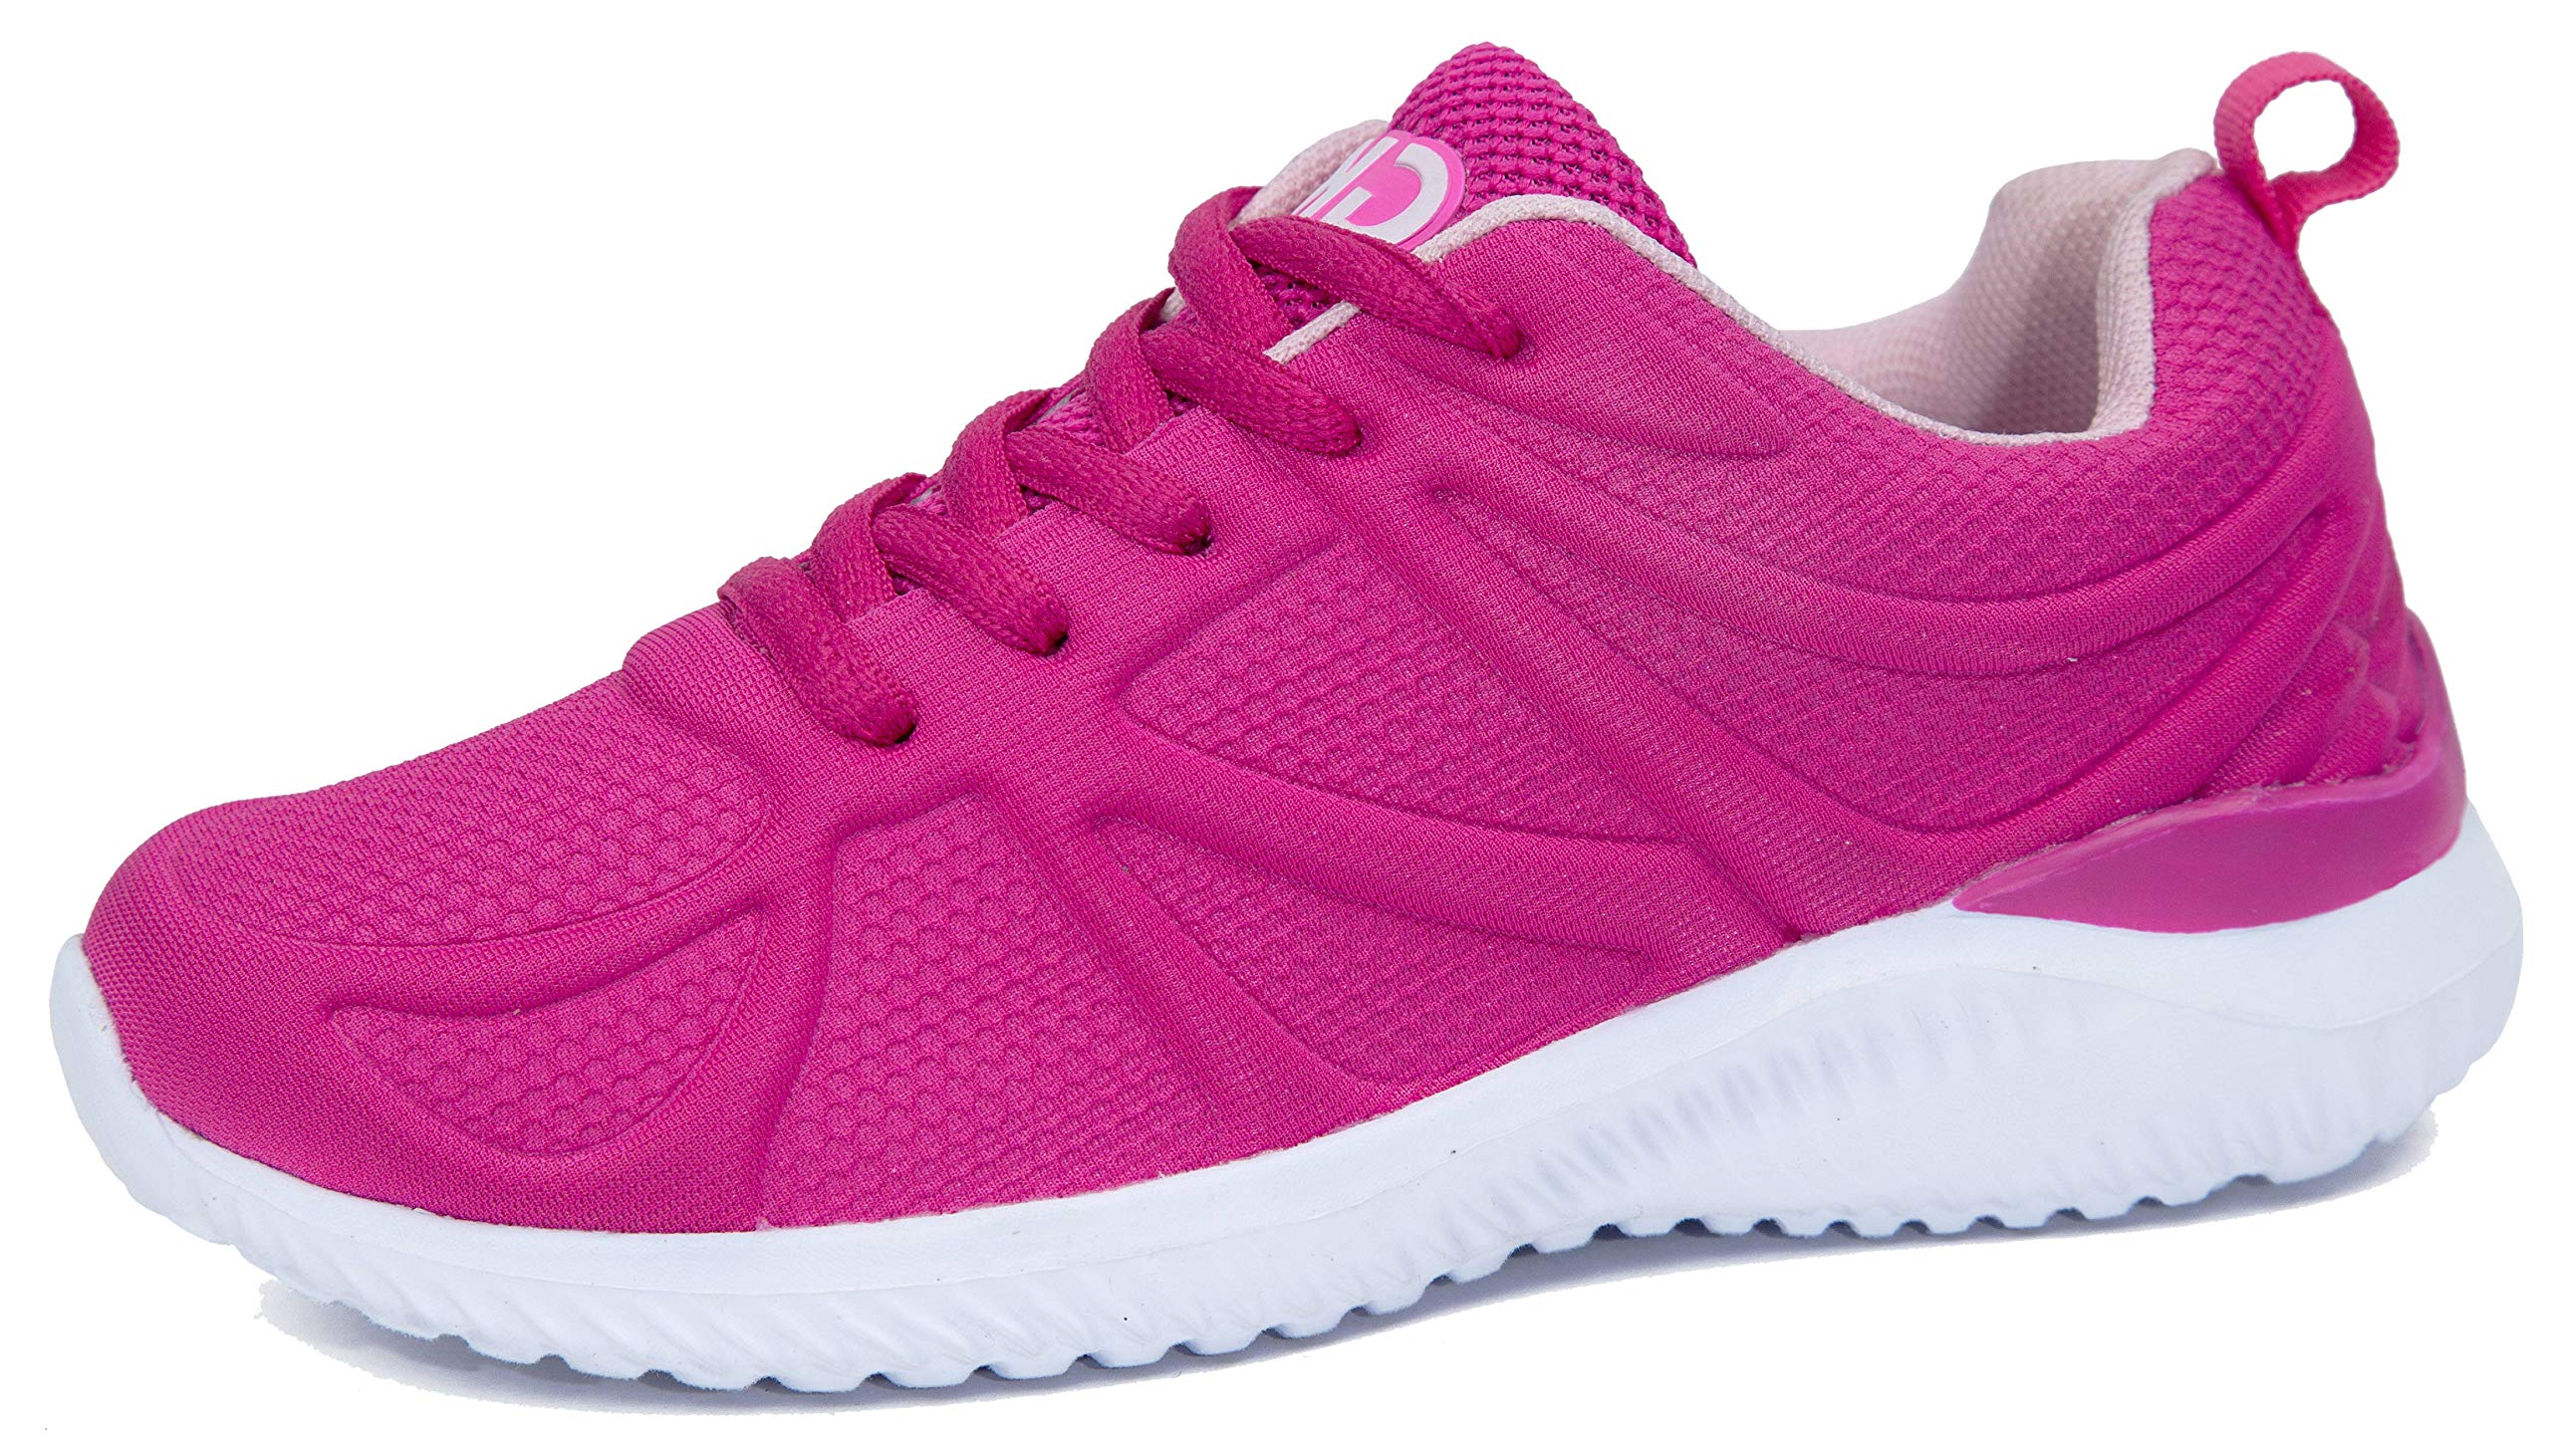 Kids Athletic Tennis Shoes - Little Kid Sneakers with Girl and Boy Sizes Fuchsia by Gimbo Kids